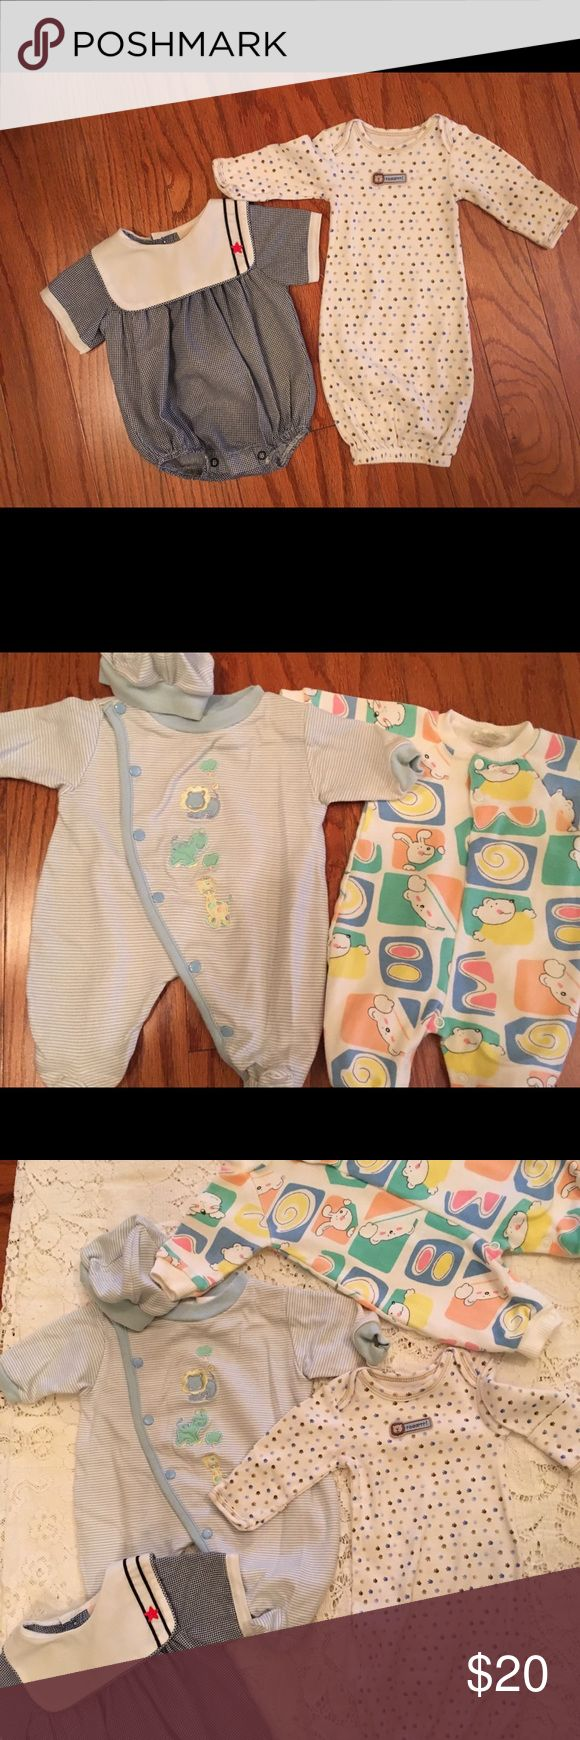 PREEMIE Lot of 4 Preemie boy clothes Gown, sleeper, Sleeper with cap and dress outfit carters & Etc One Pieces